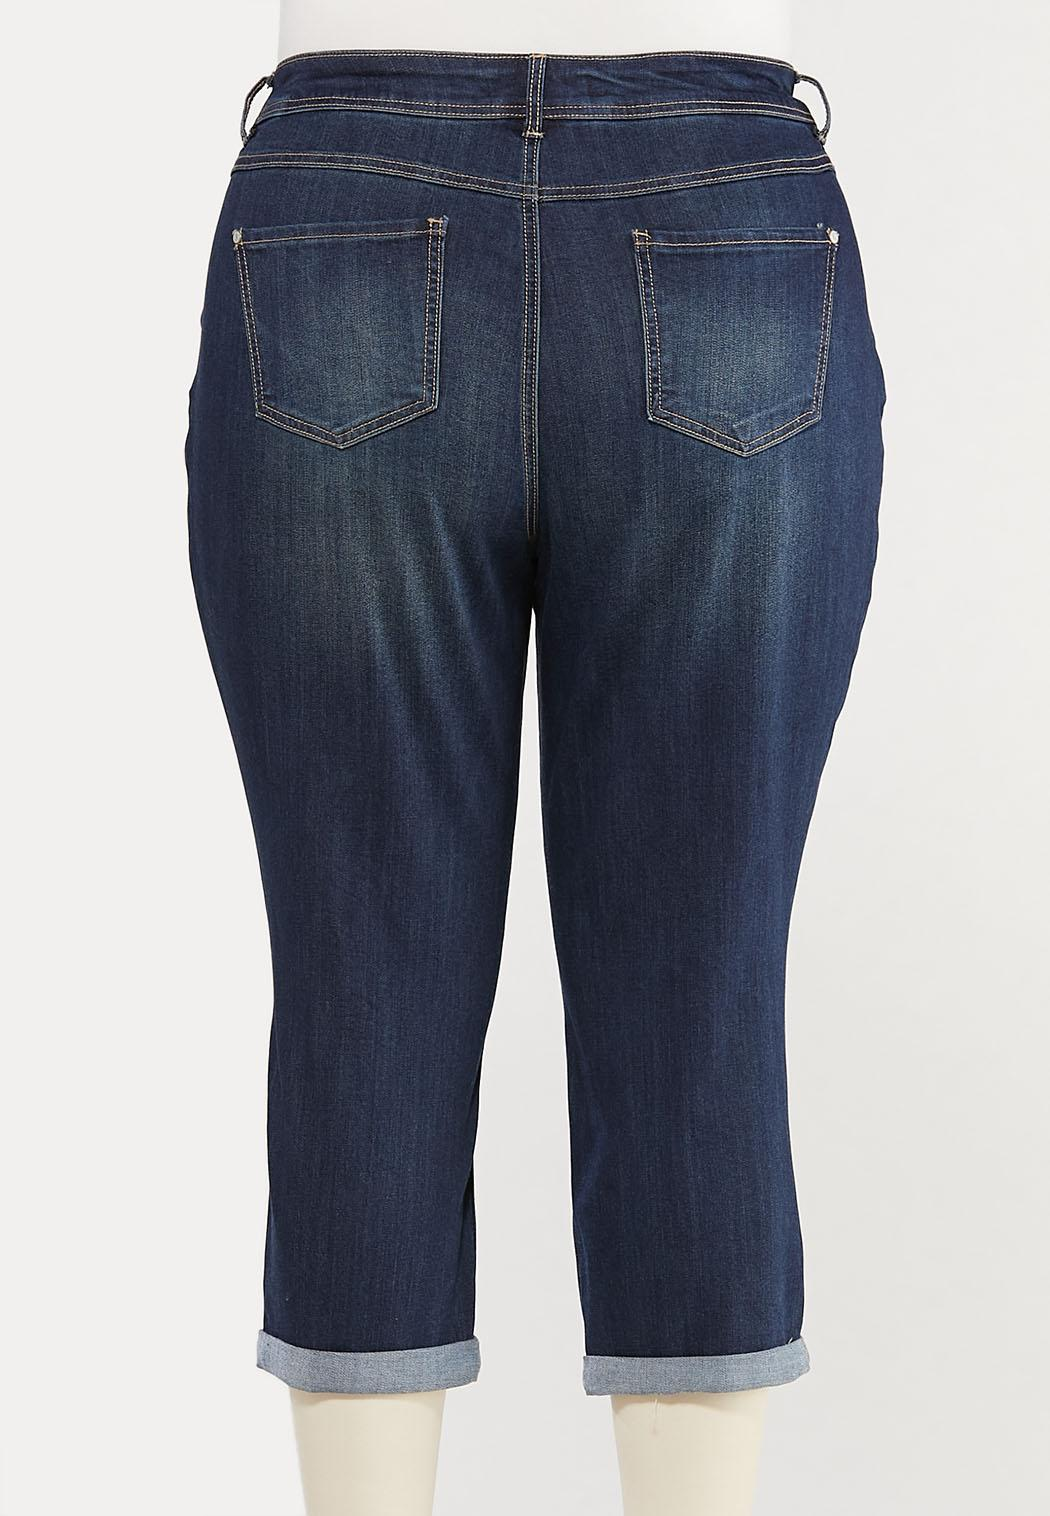 Plus Size Cropped Distressed Girlfriend Jeans (Item #44522550)